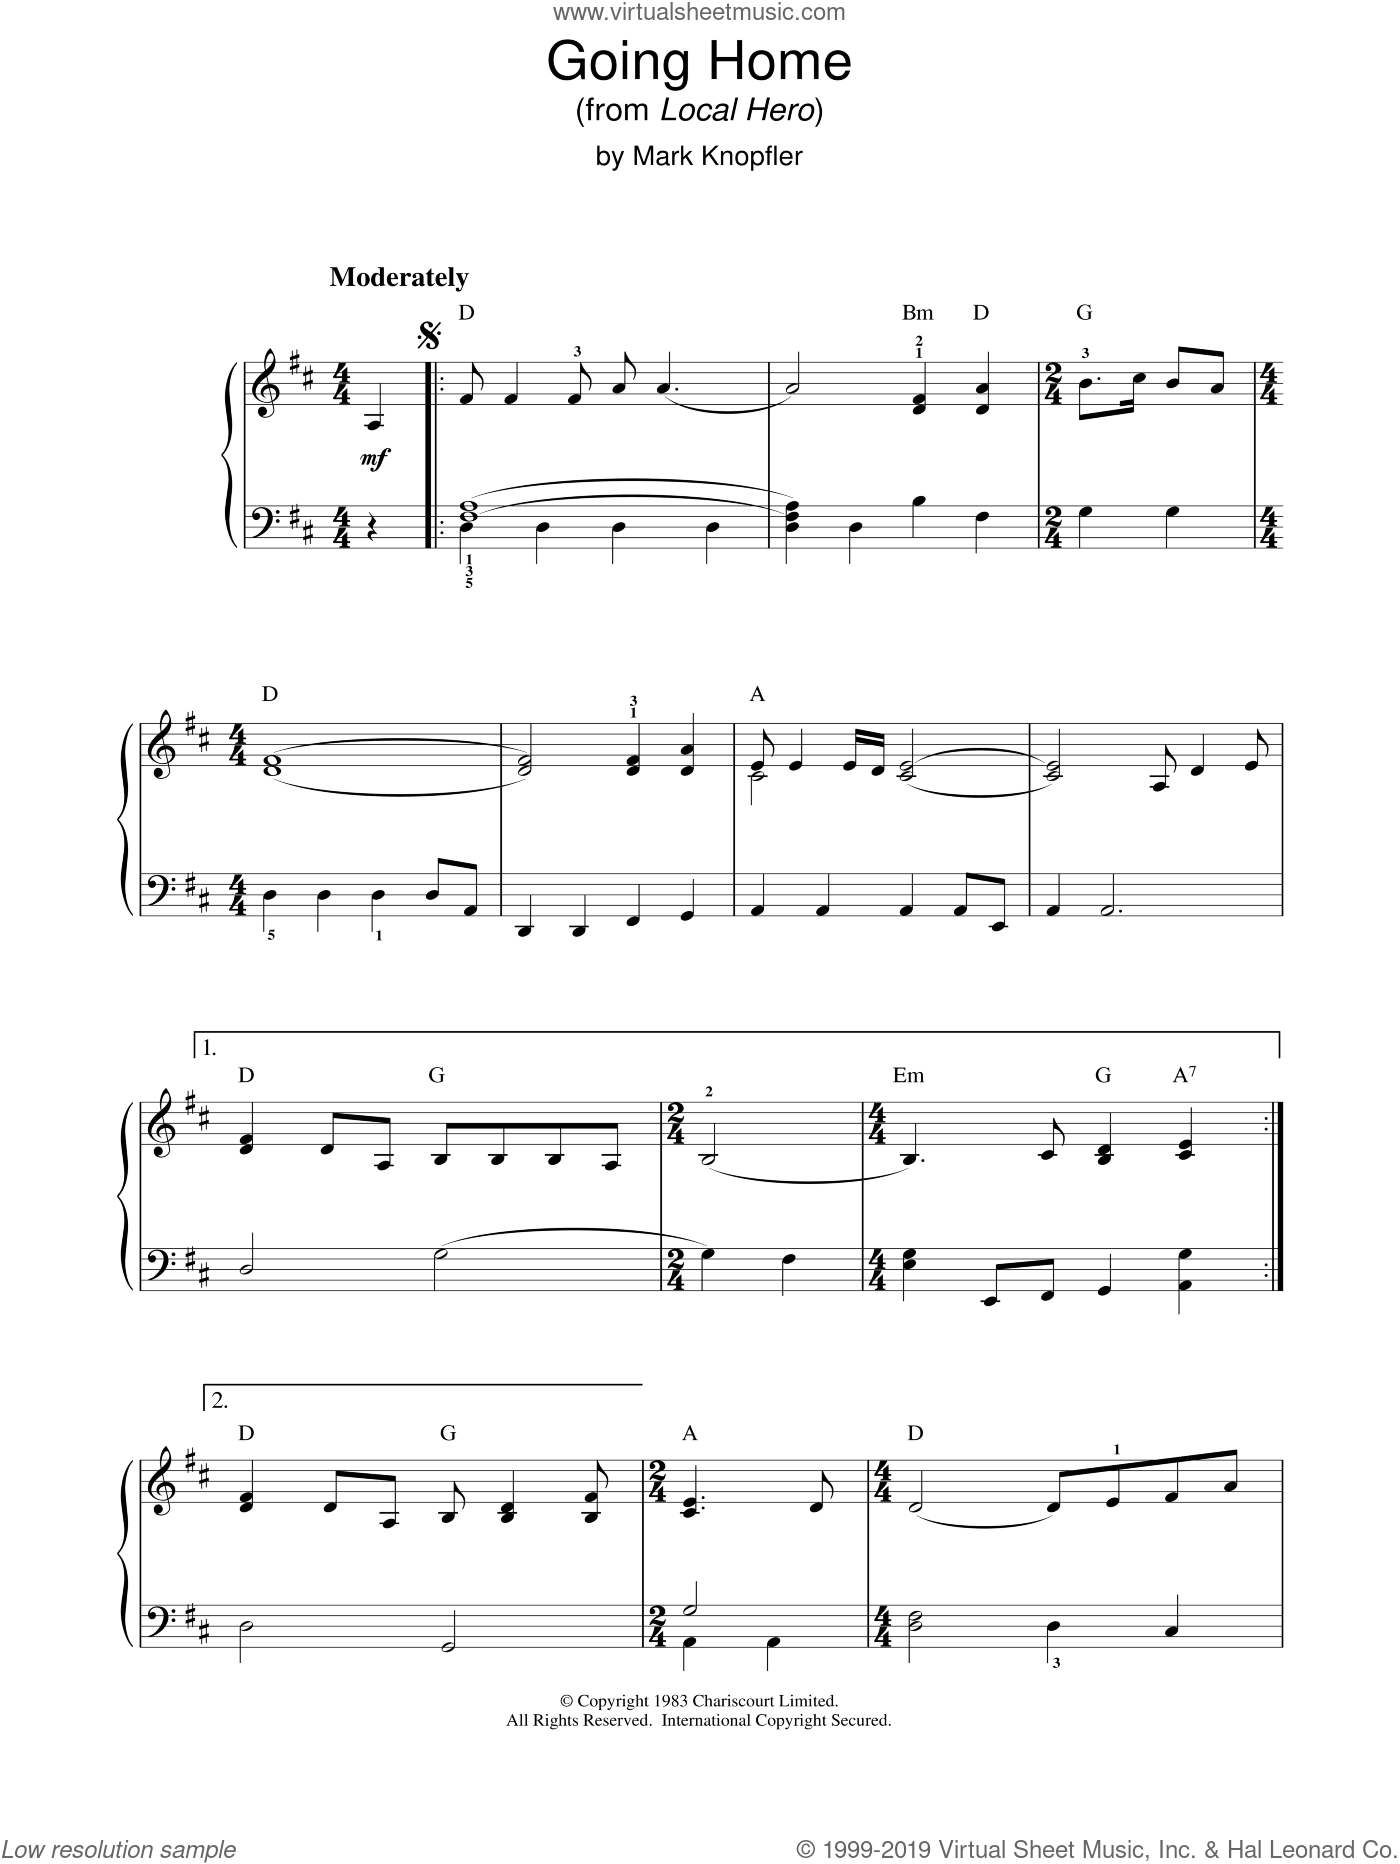 Going Home (from Local Hero) sheet music for piano solo by Mark Knopfler